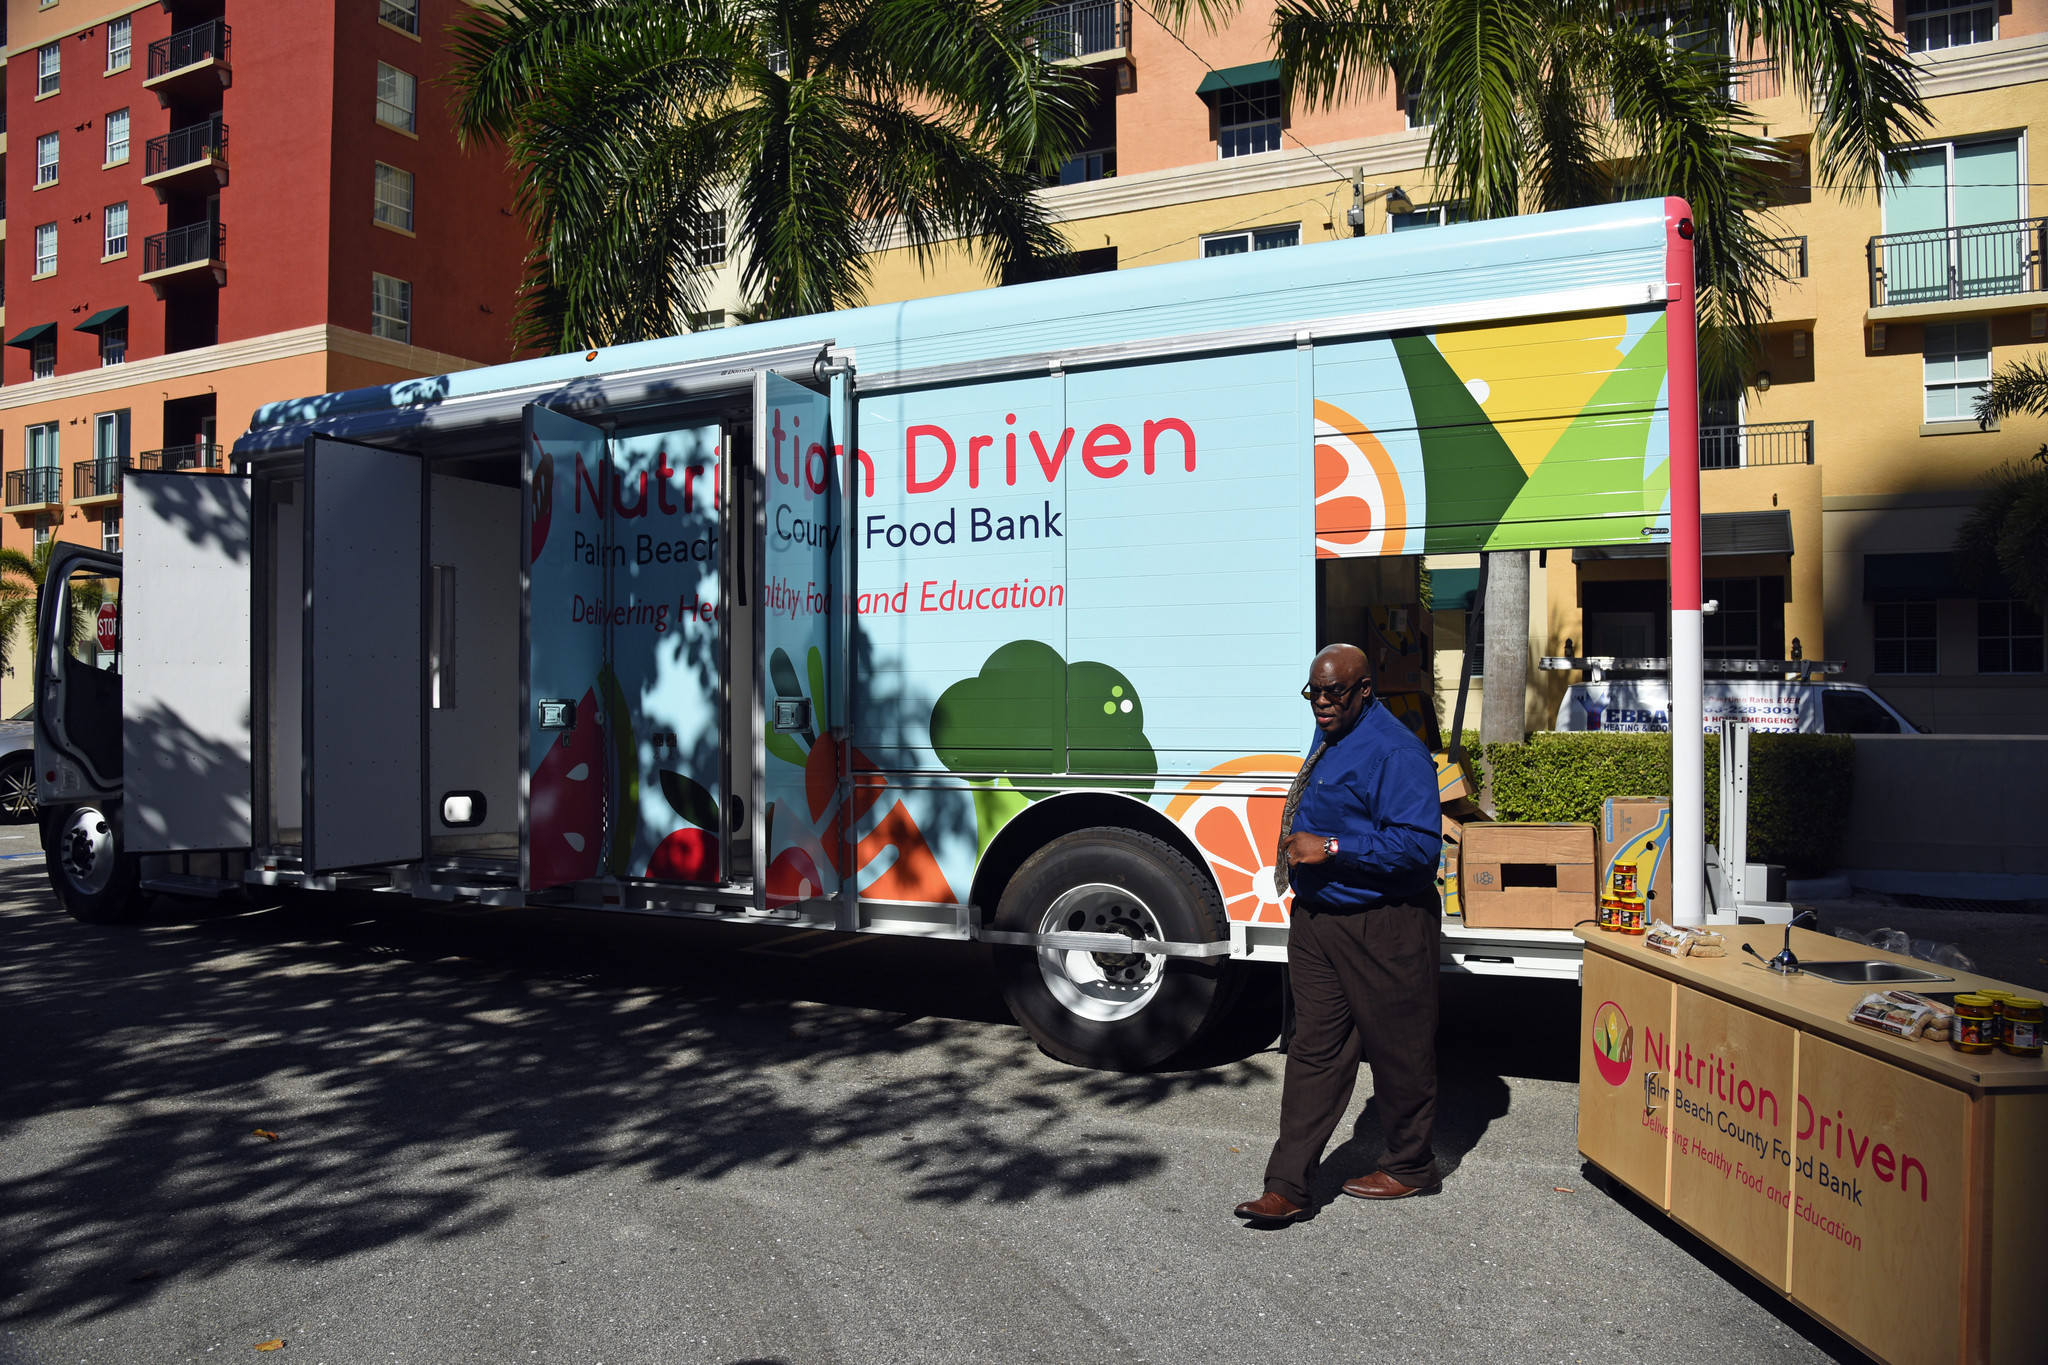 Palm Beach County Food Bank Reviews